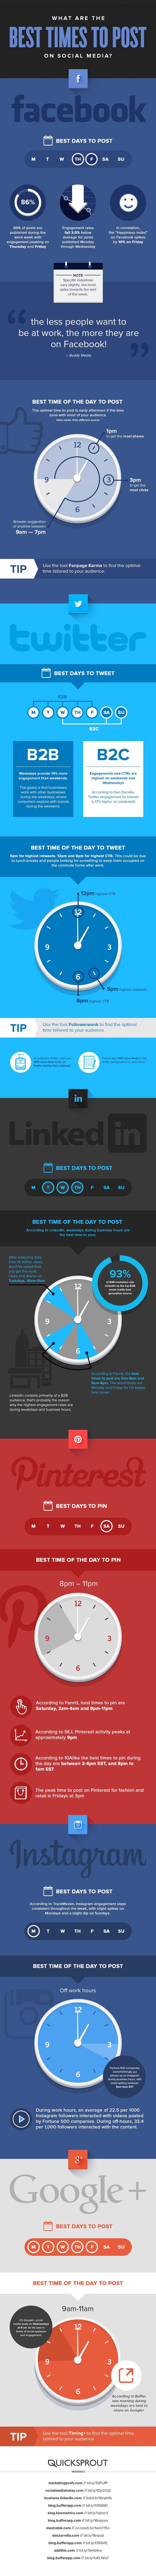 What Are the Best Times to Post on Social Media? #infographic